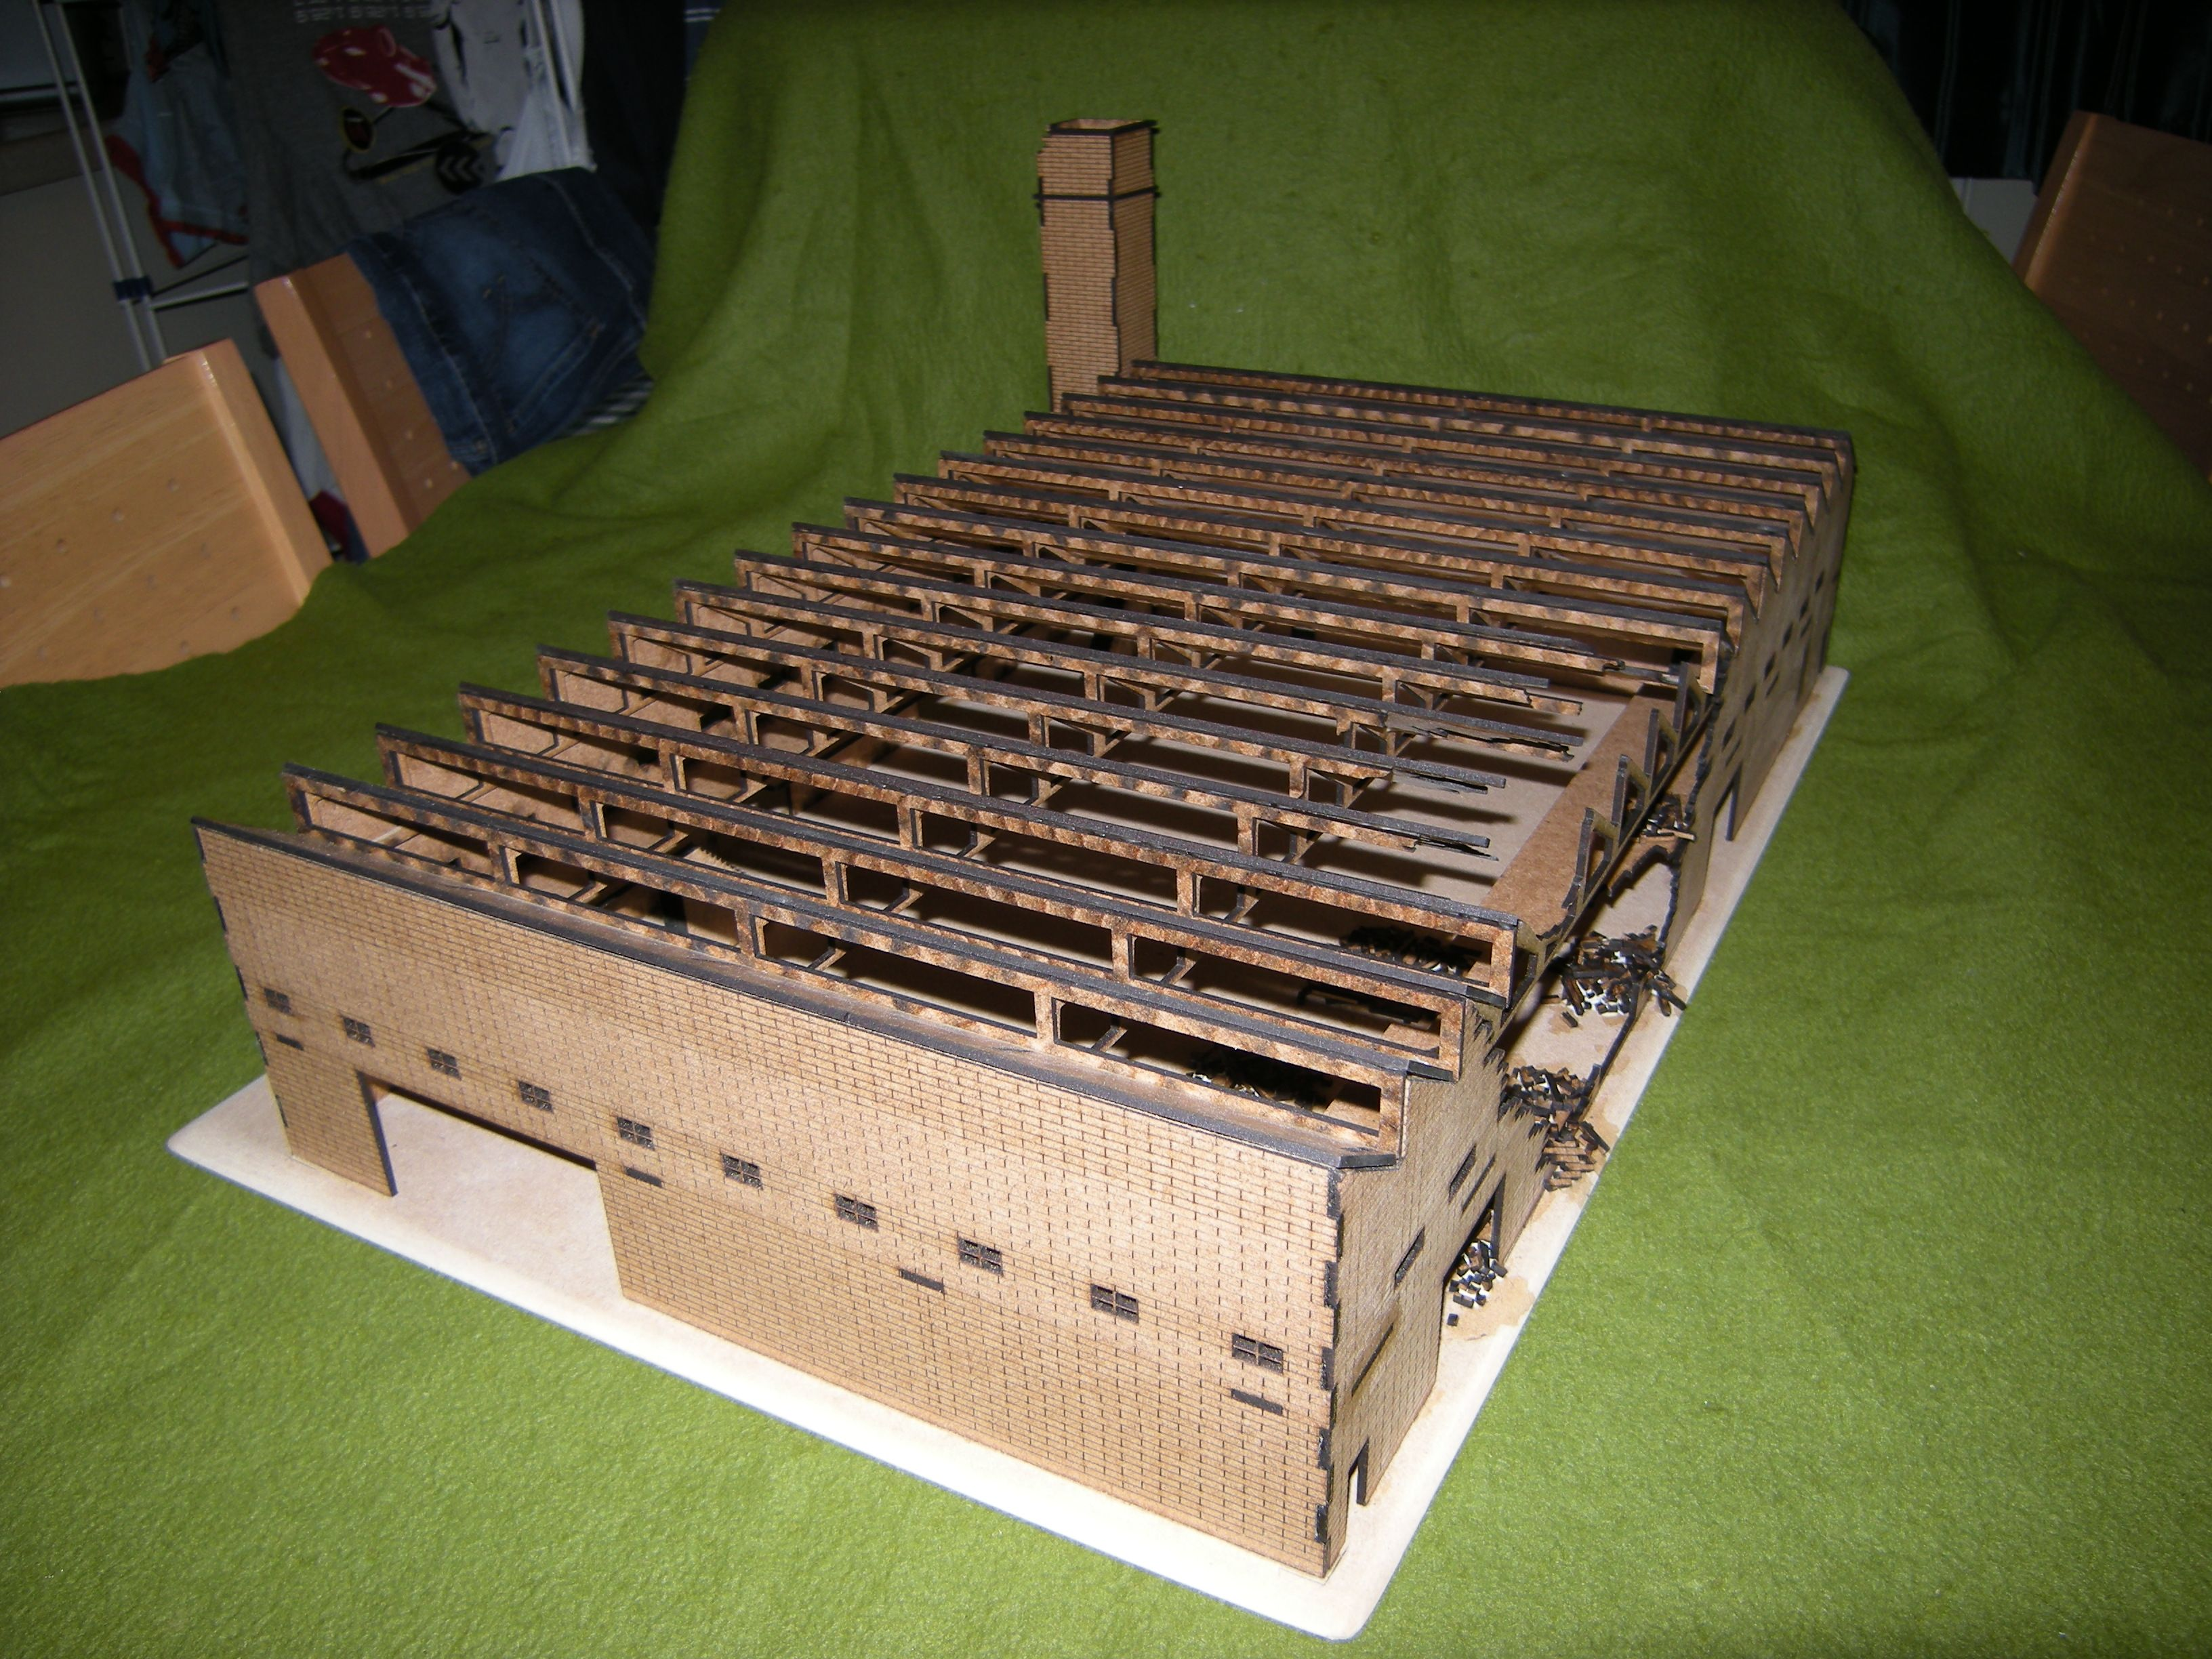 15mm scale factory, for a Stalingrad game | Game & Terrain